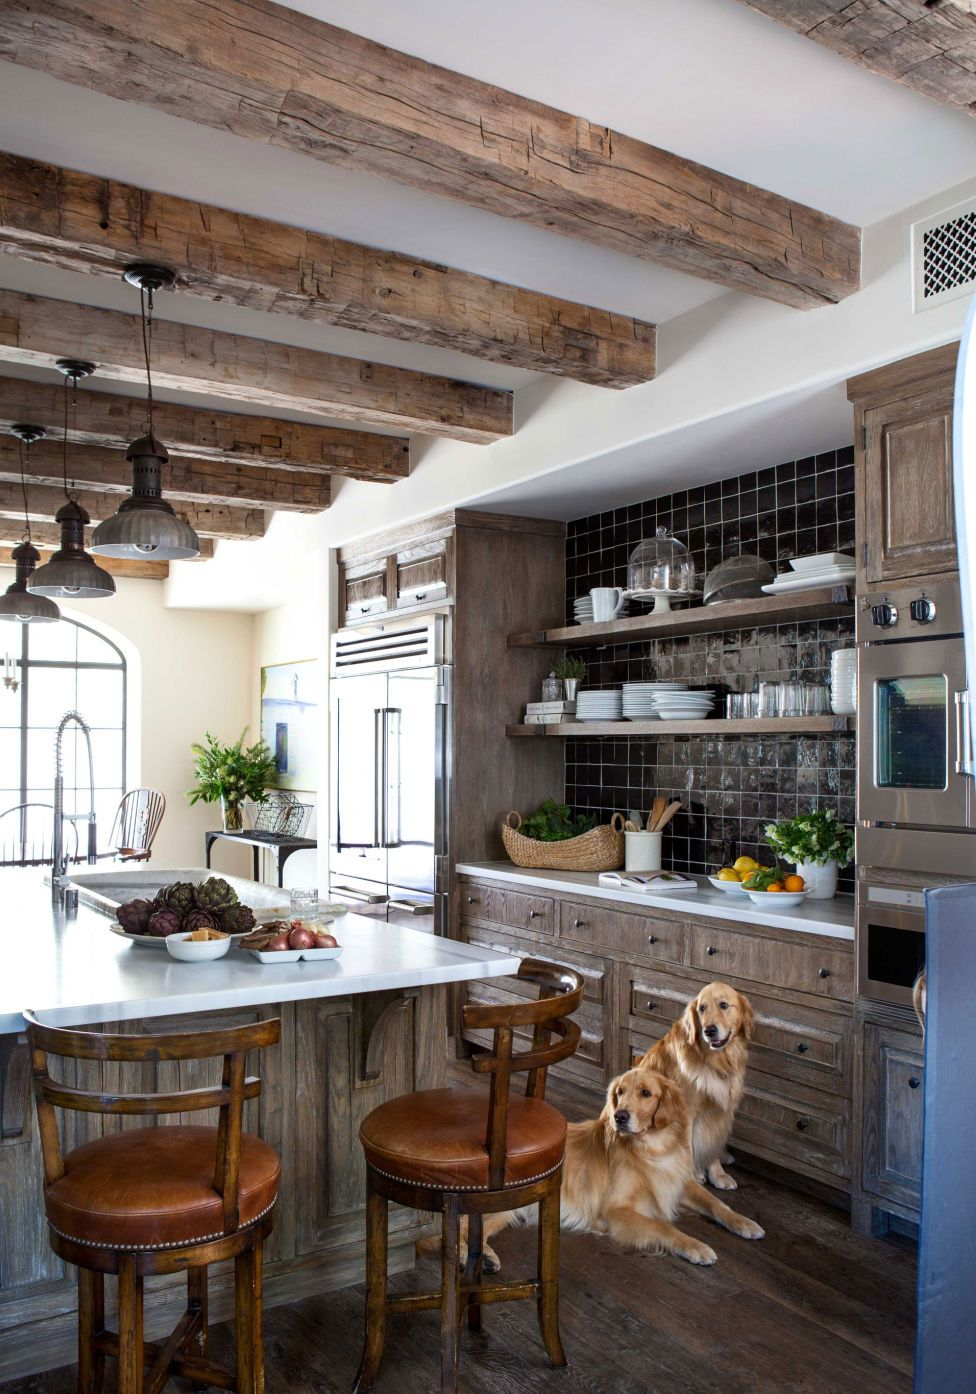 Older Home Kitchen Remodeling Ideas with Wood Beam Ceiling